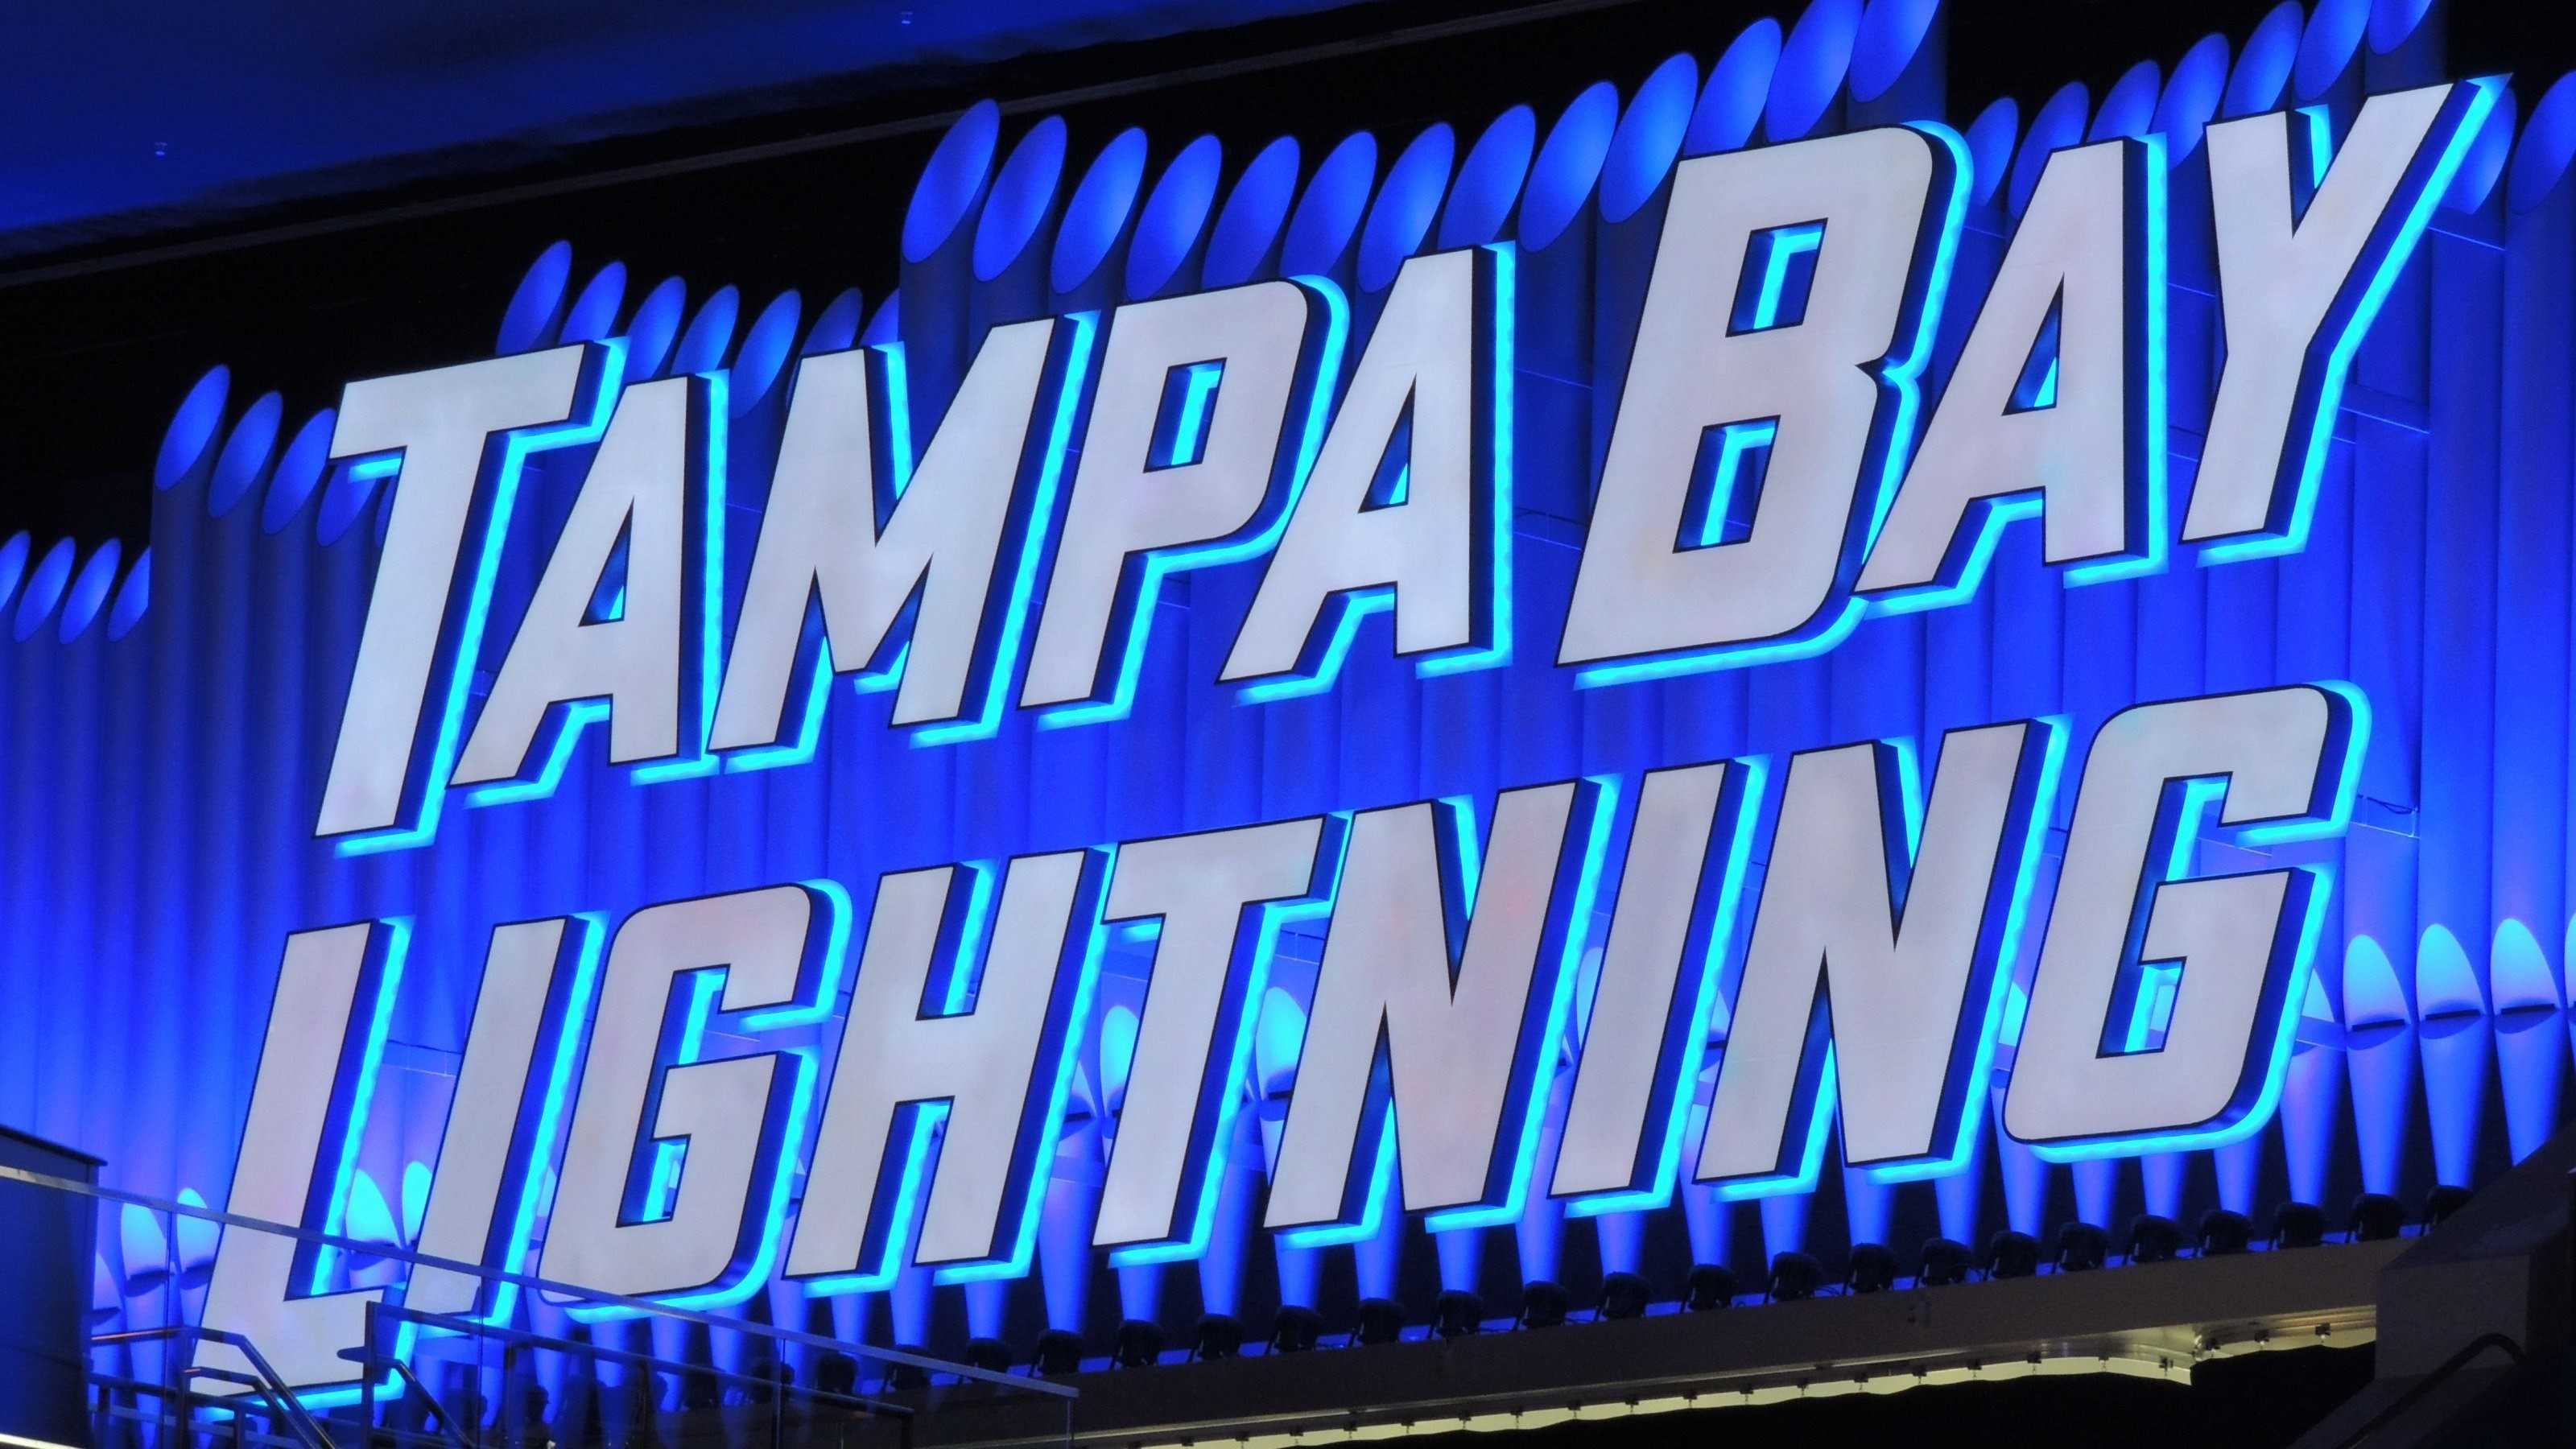 3200x1800 tampa bay lightning wallpaper for mac computers by China WilKinson  (2017-03-03